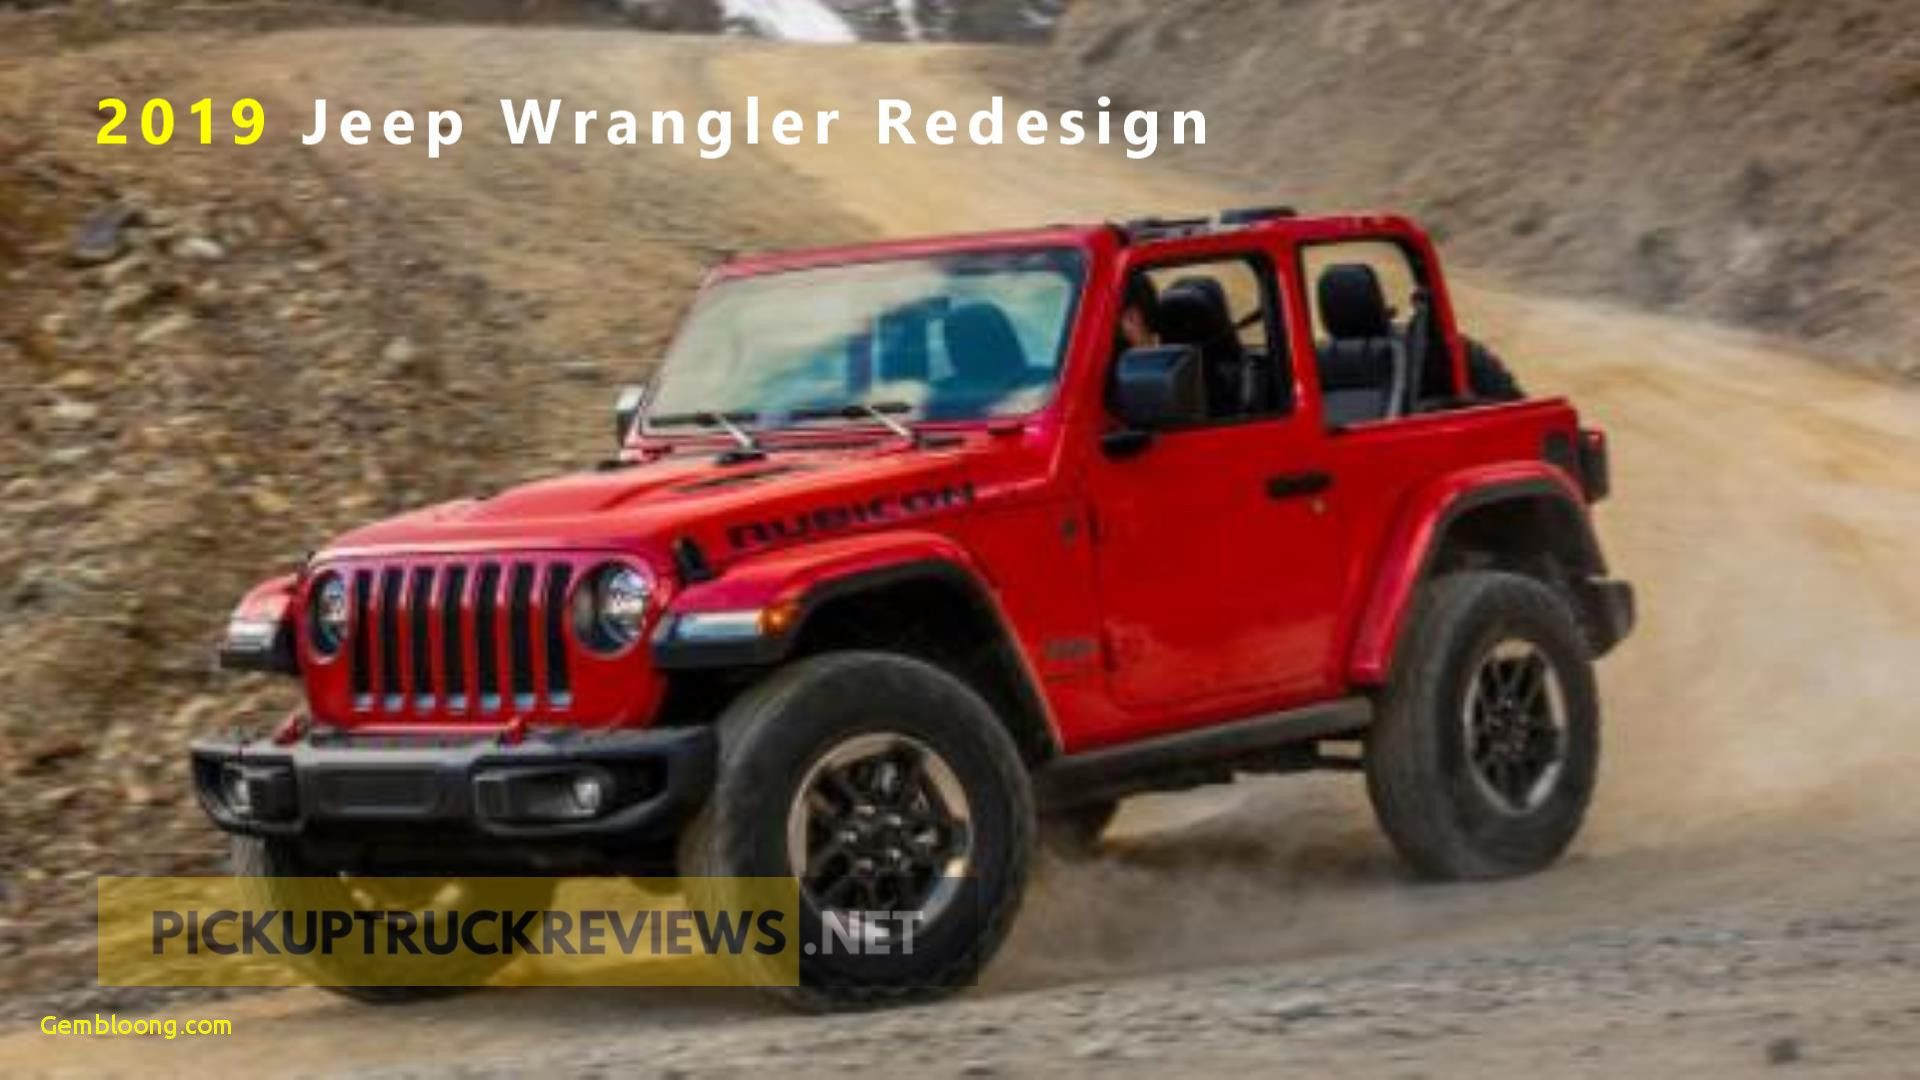 2018 Jeep Wrangler Unlimited Sahara More Civilized But Still A